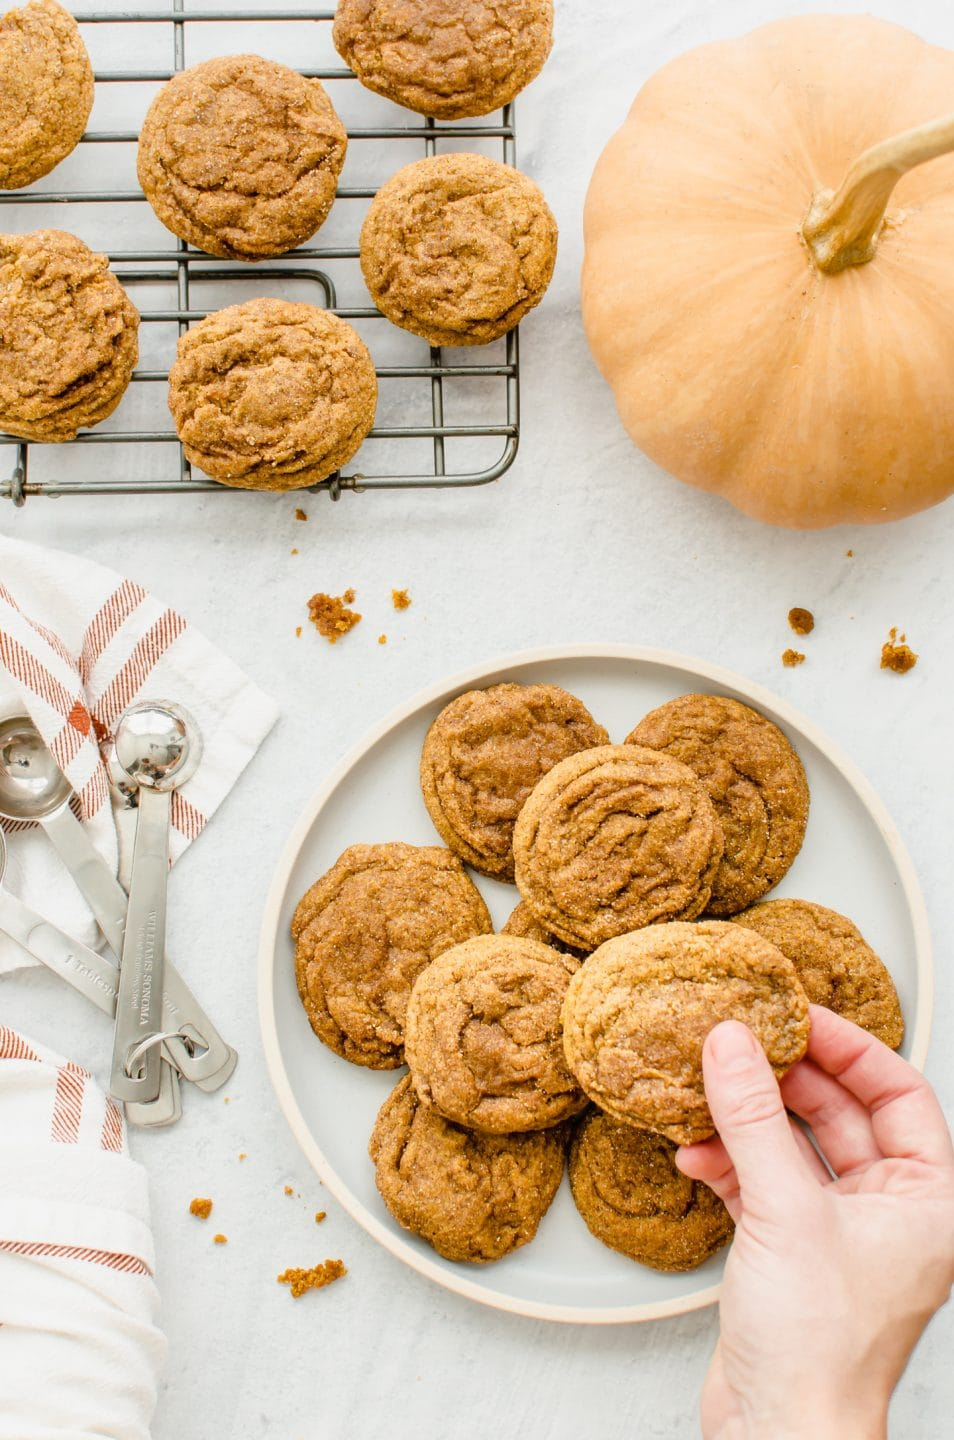 A hand reaching to grab a cookie from a plate of Pumpkin Cookie Butter Doodles with a pumpkin on the side.